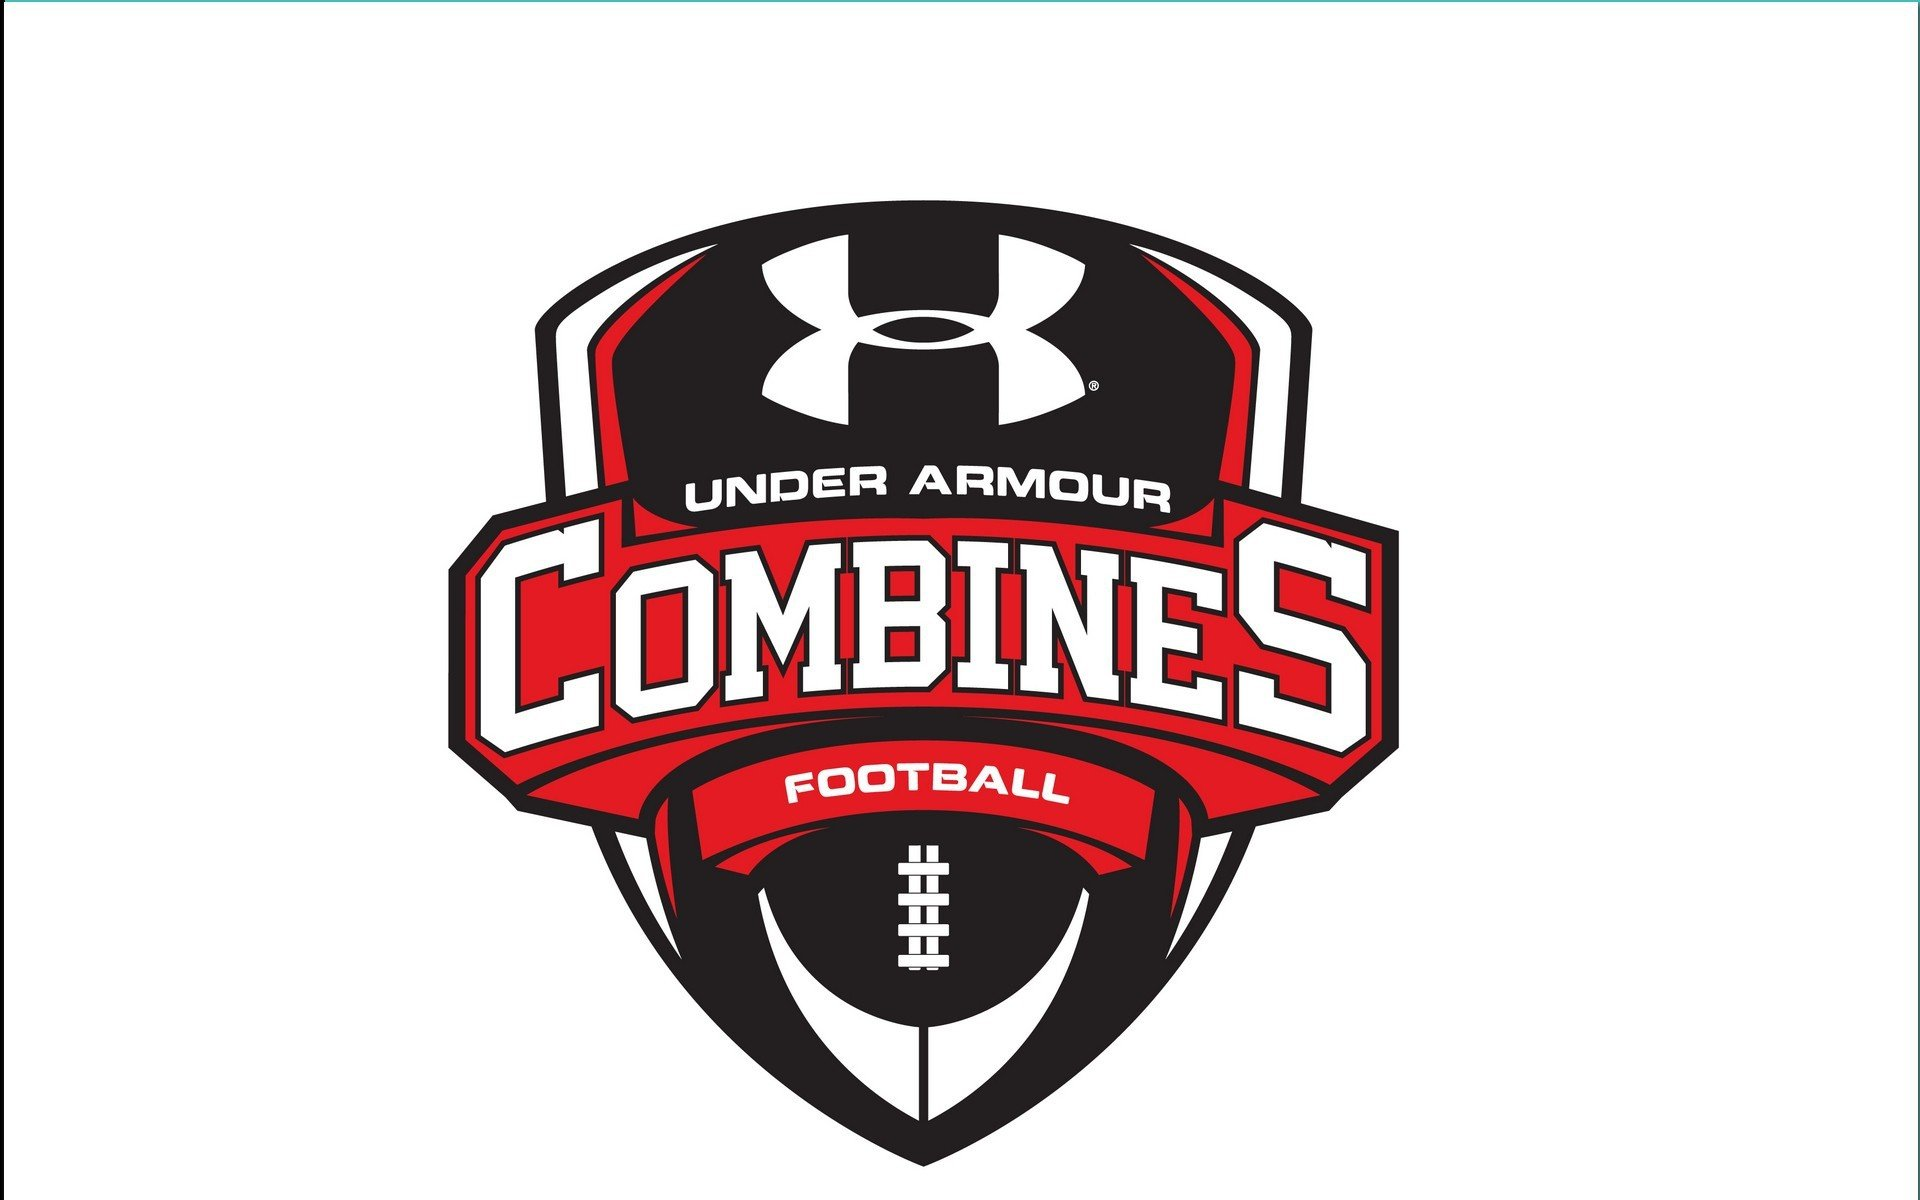 Under Armour Football Backgrounds Armour combine 1920x1200